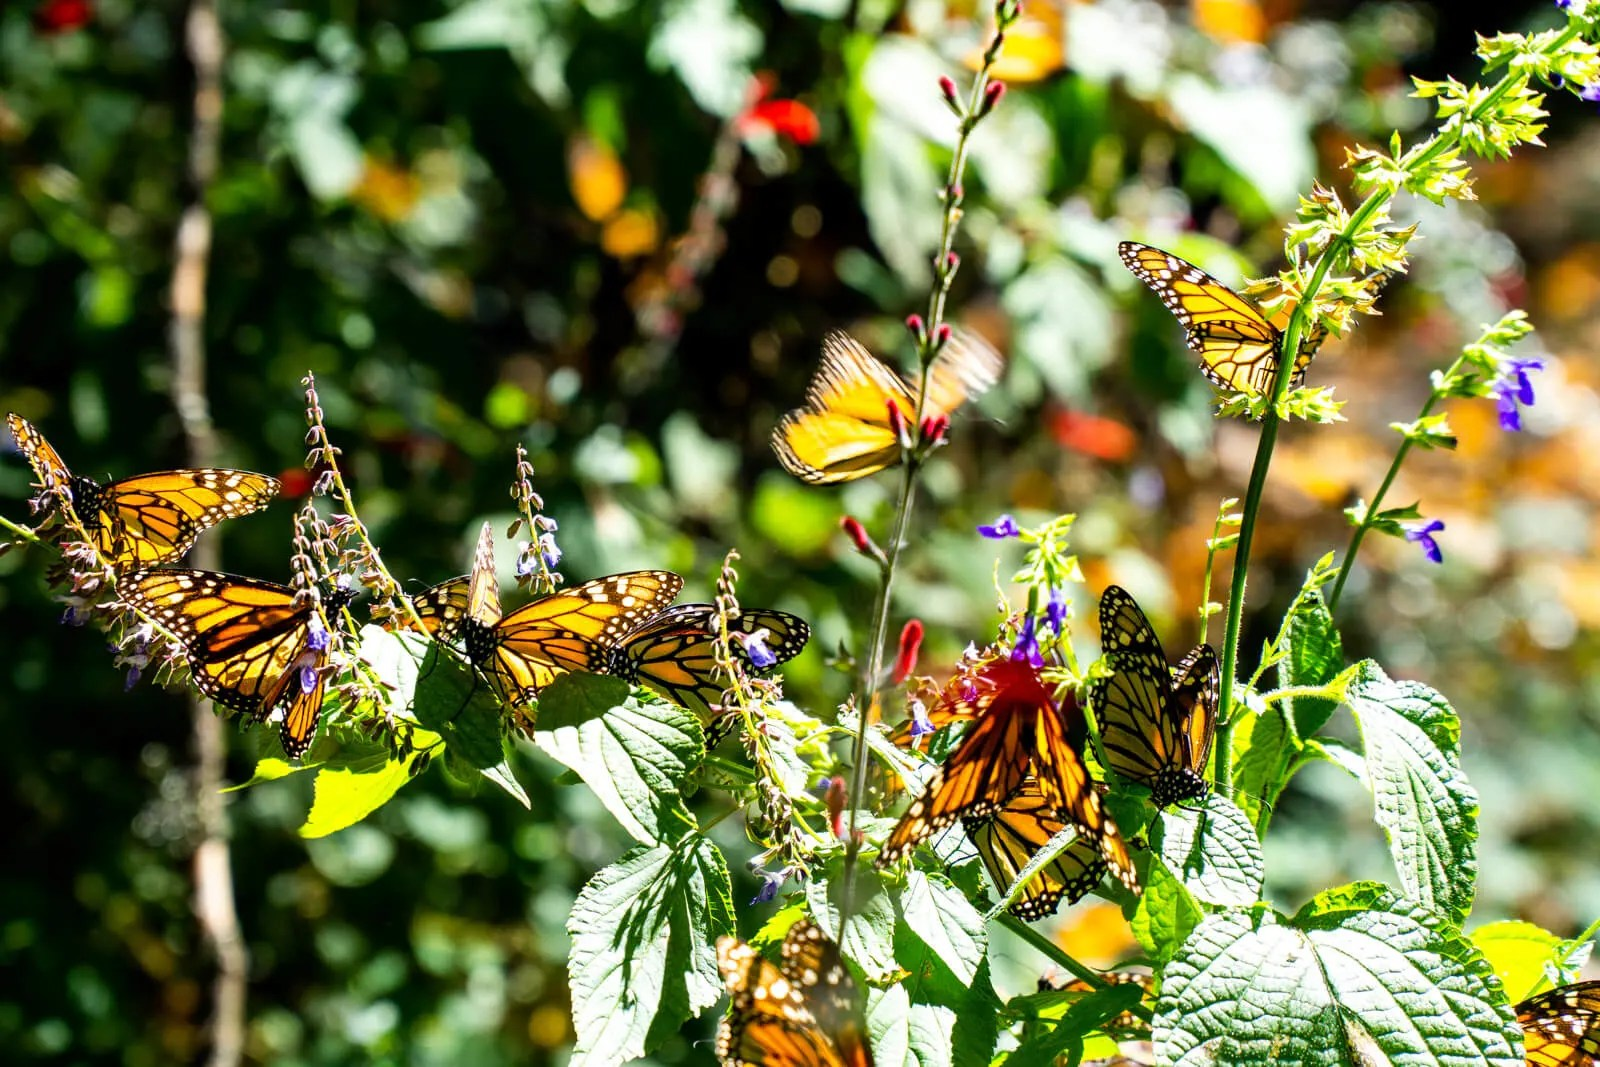 Where To See The Monarch Butterfly Migration In Mexico